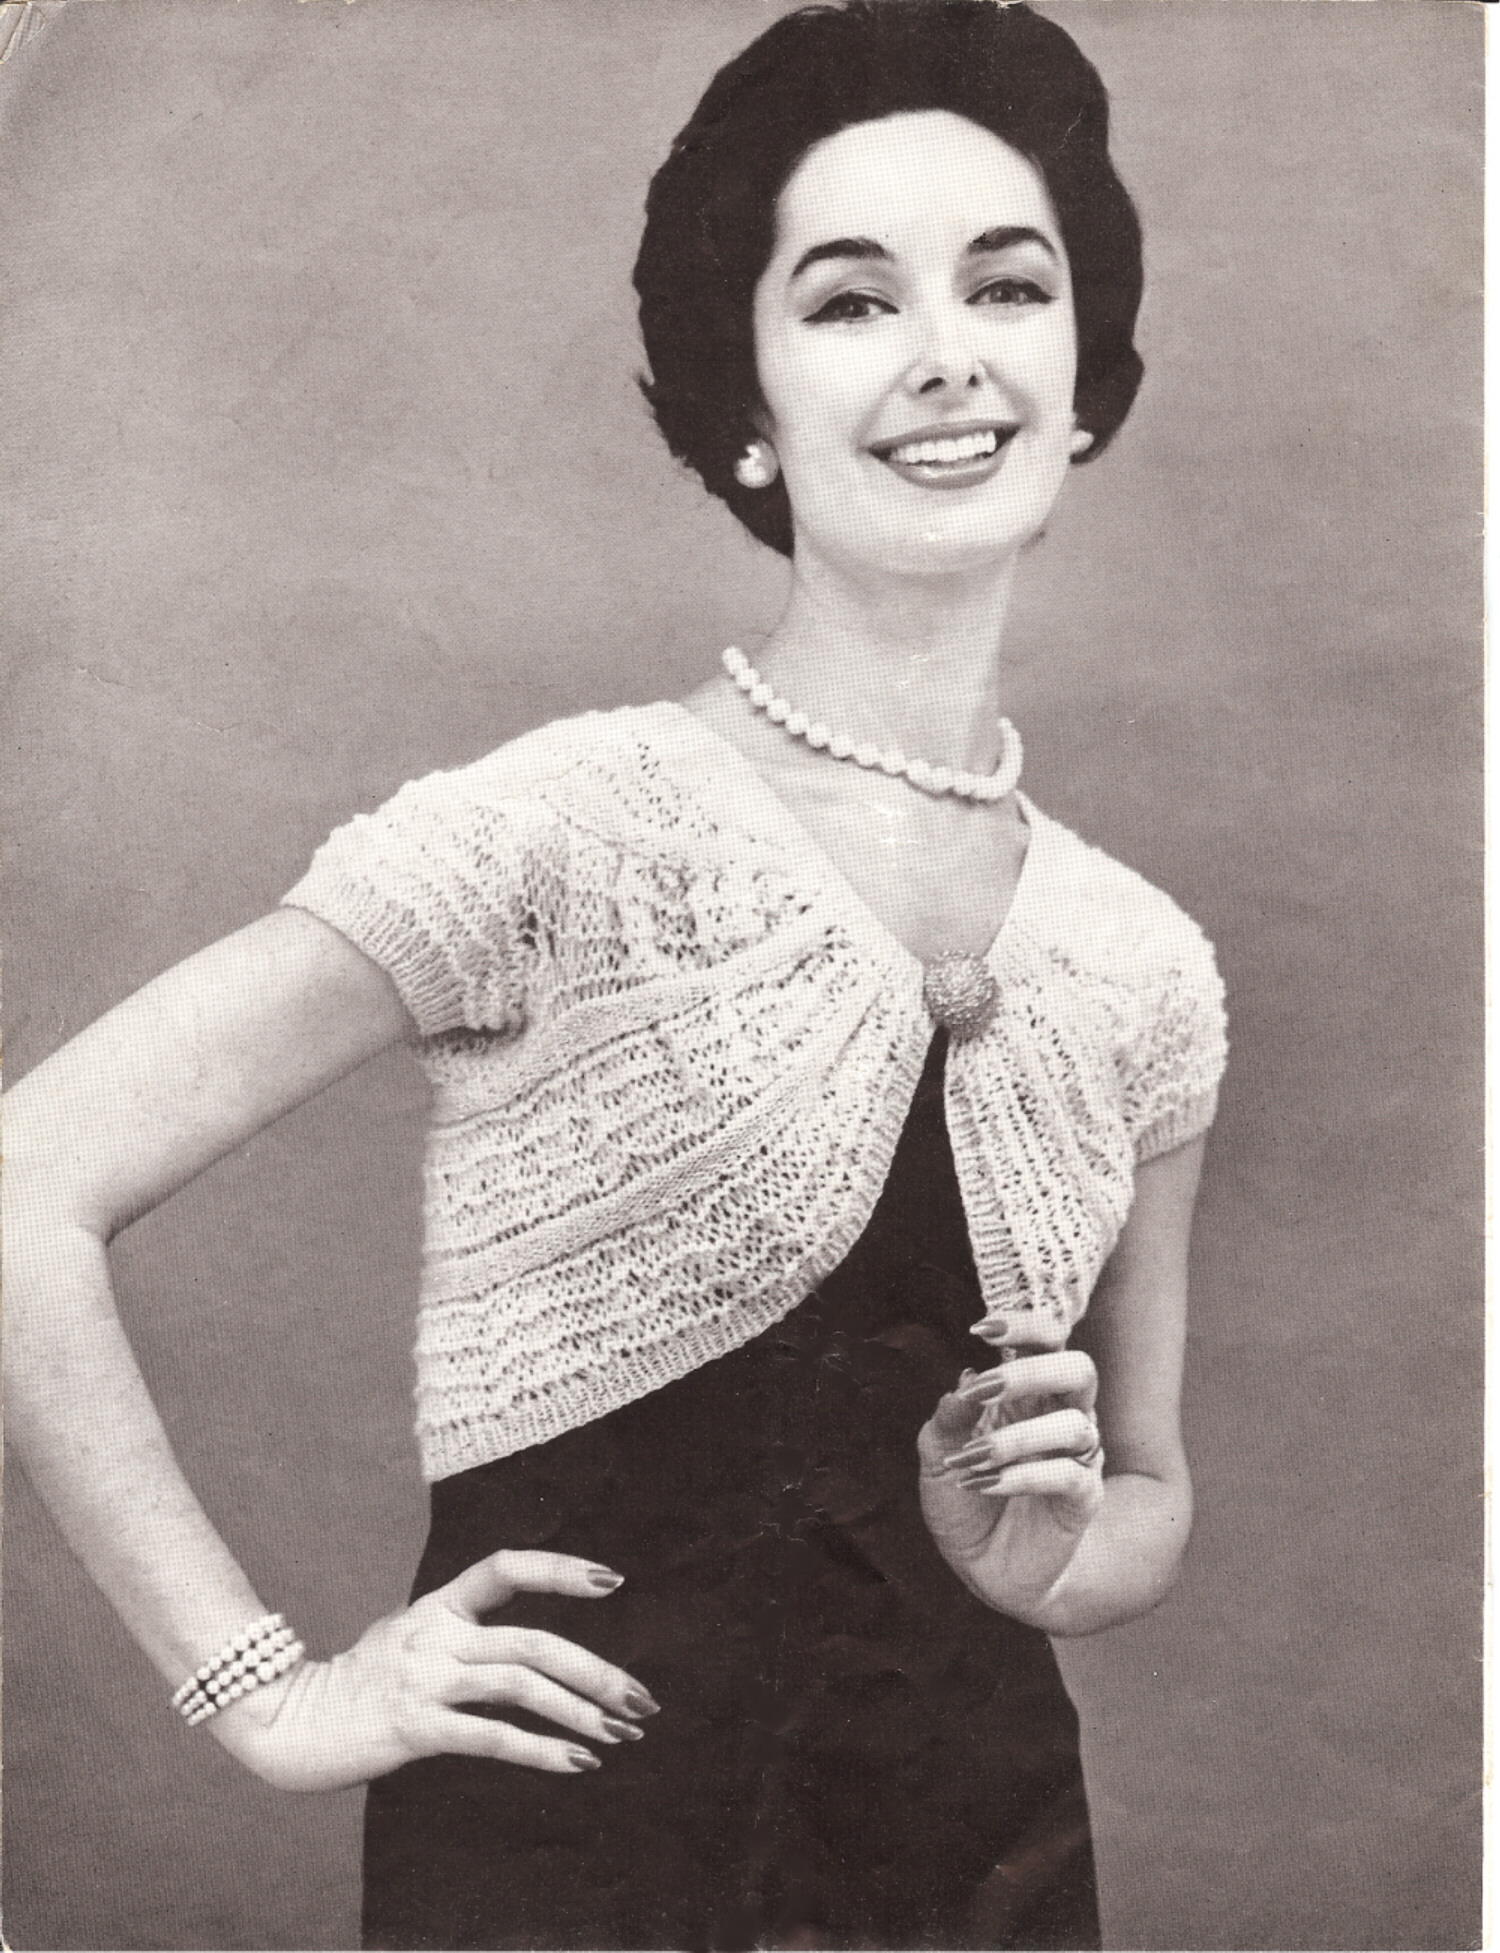 Knitting Pattern For Bolero Shrug : Vintage Knitting PATTERN to make Lacy Bolero Shrug Jacket 1950s GatheredBoler...